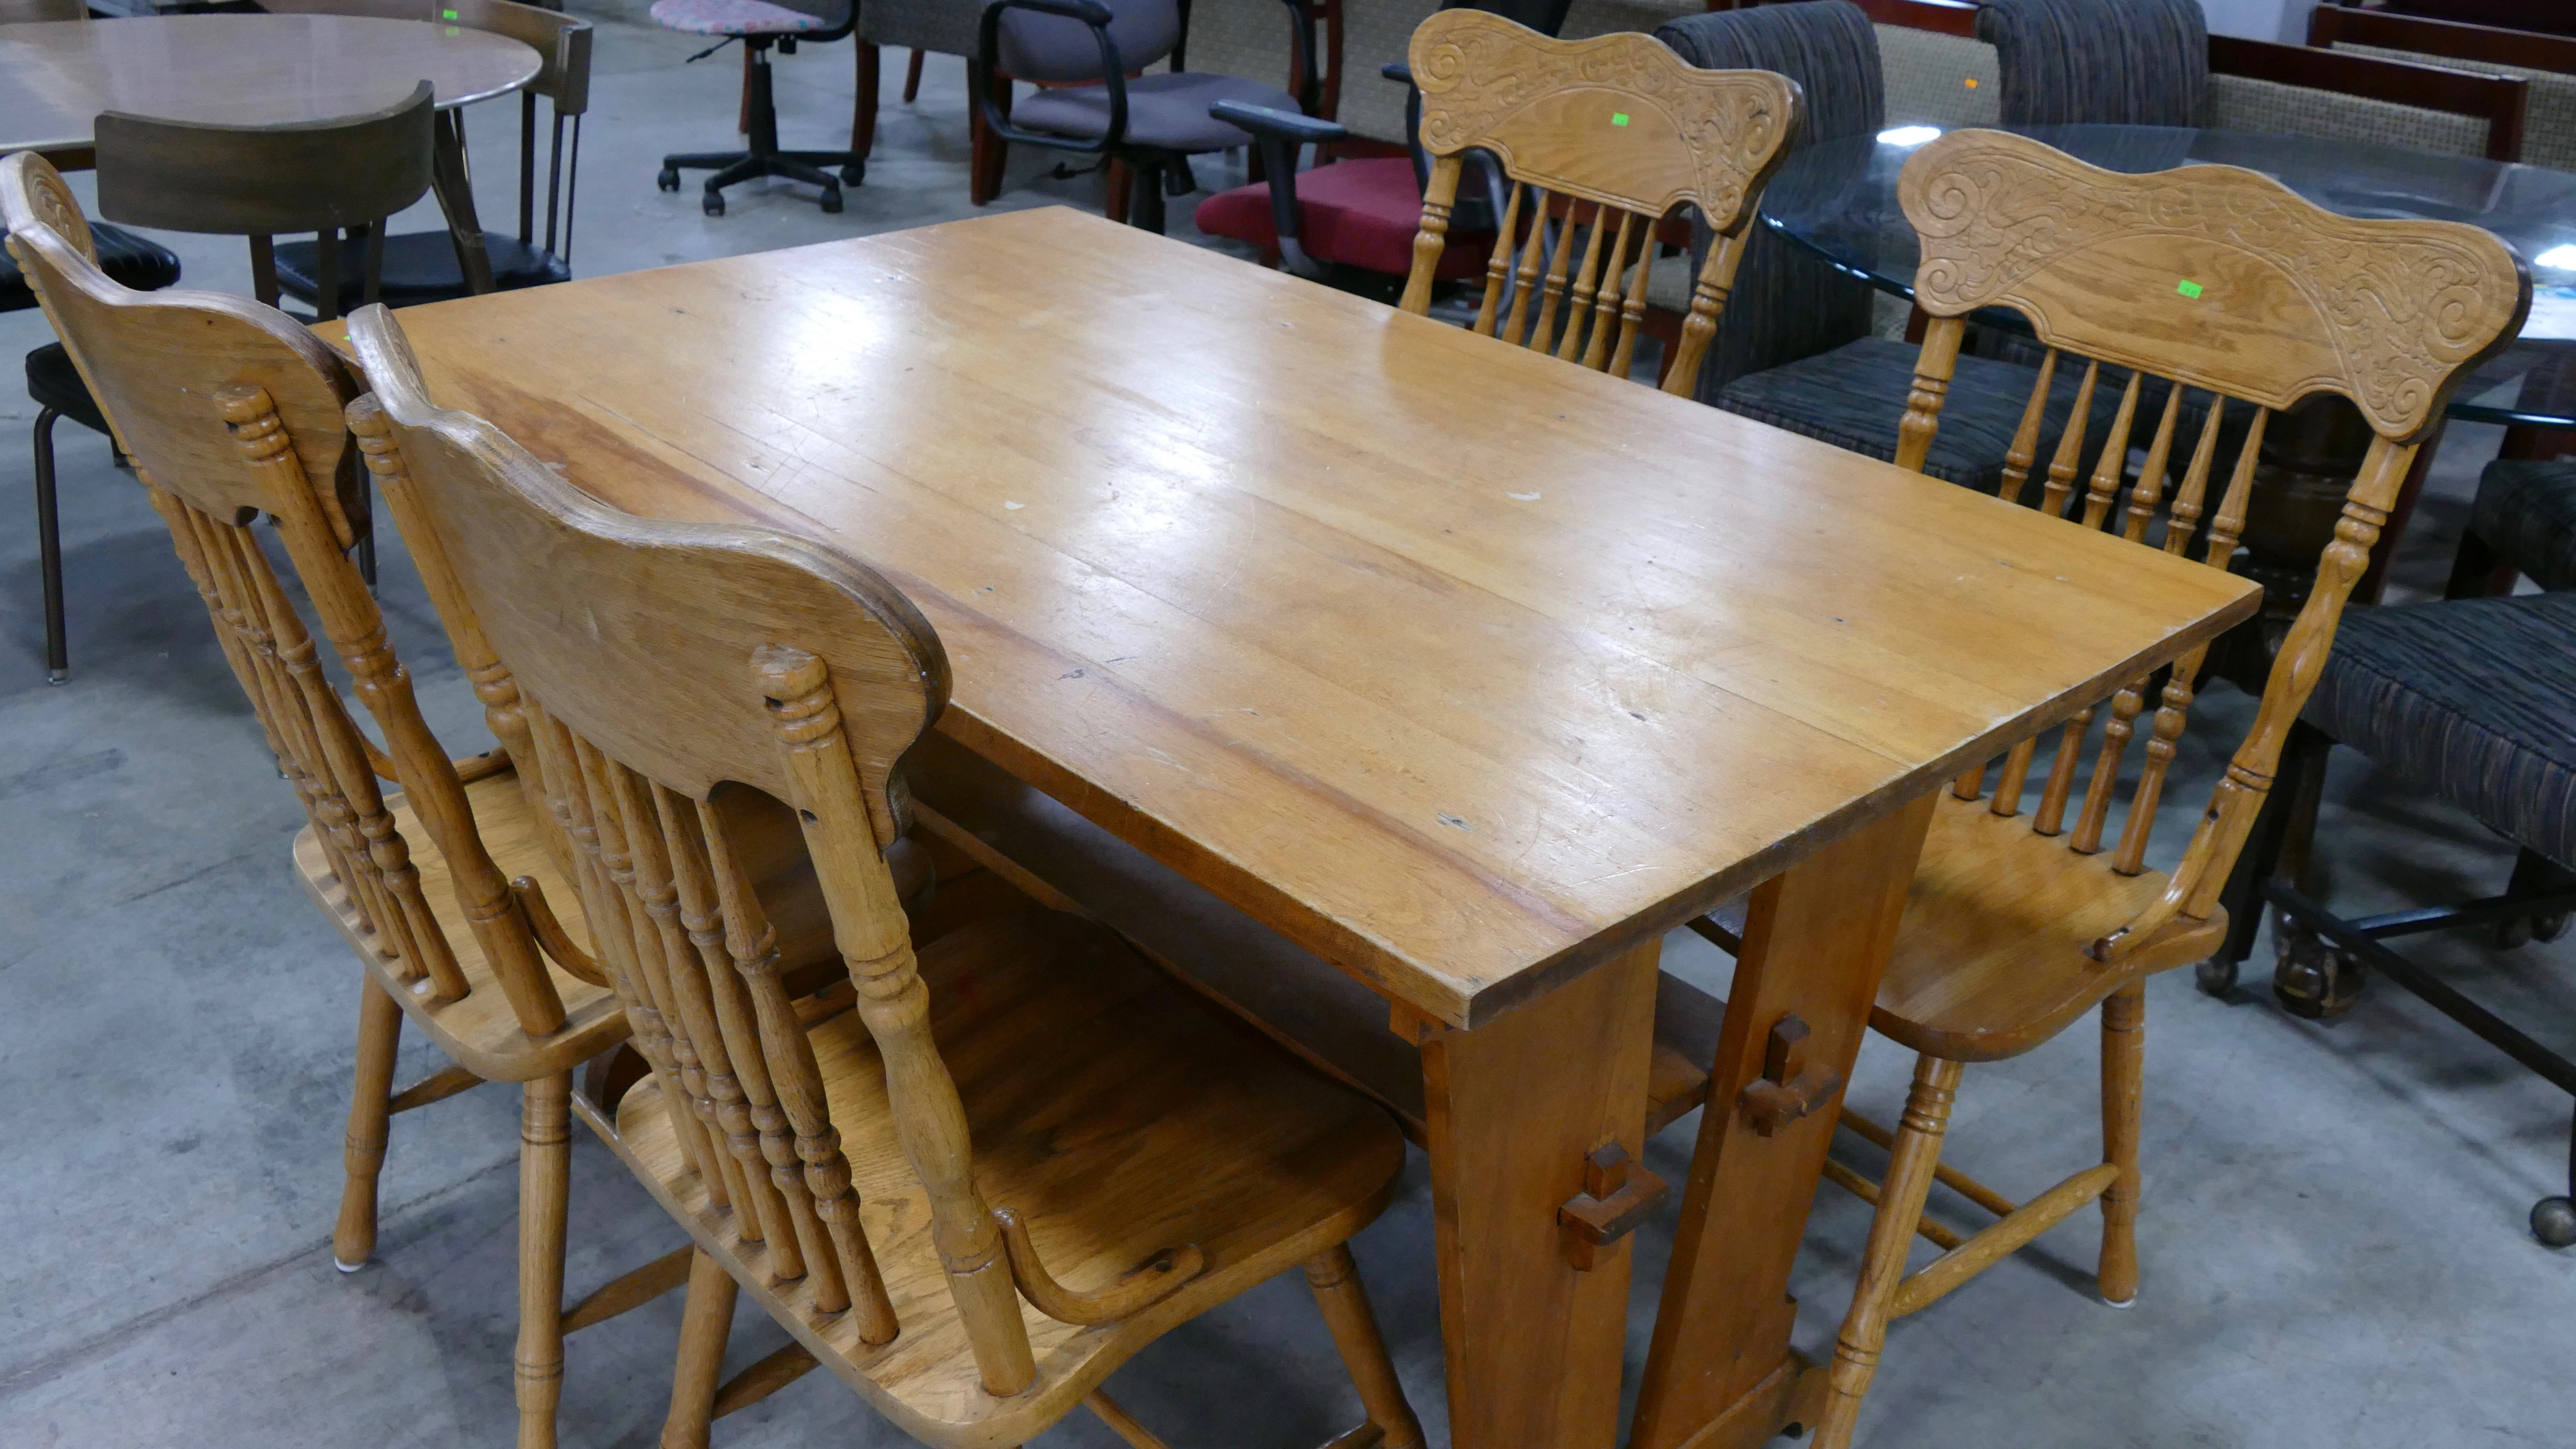 Furniture And Donations At Re, Where Can I Donate A Dining Room Set